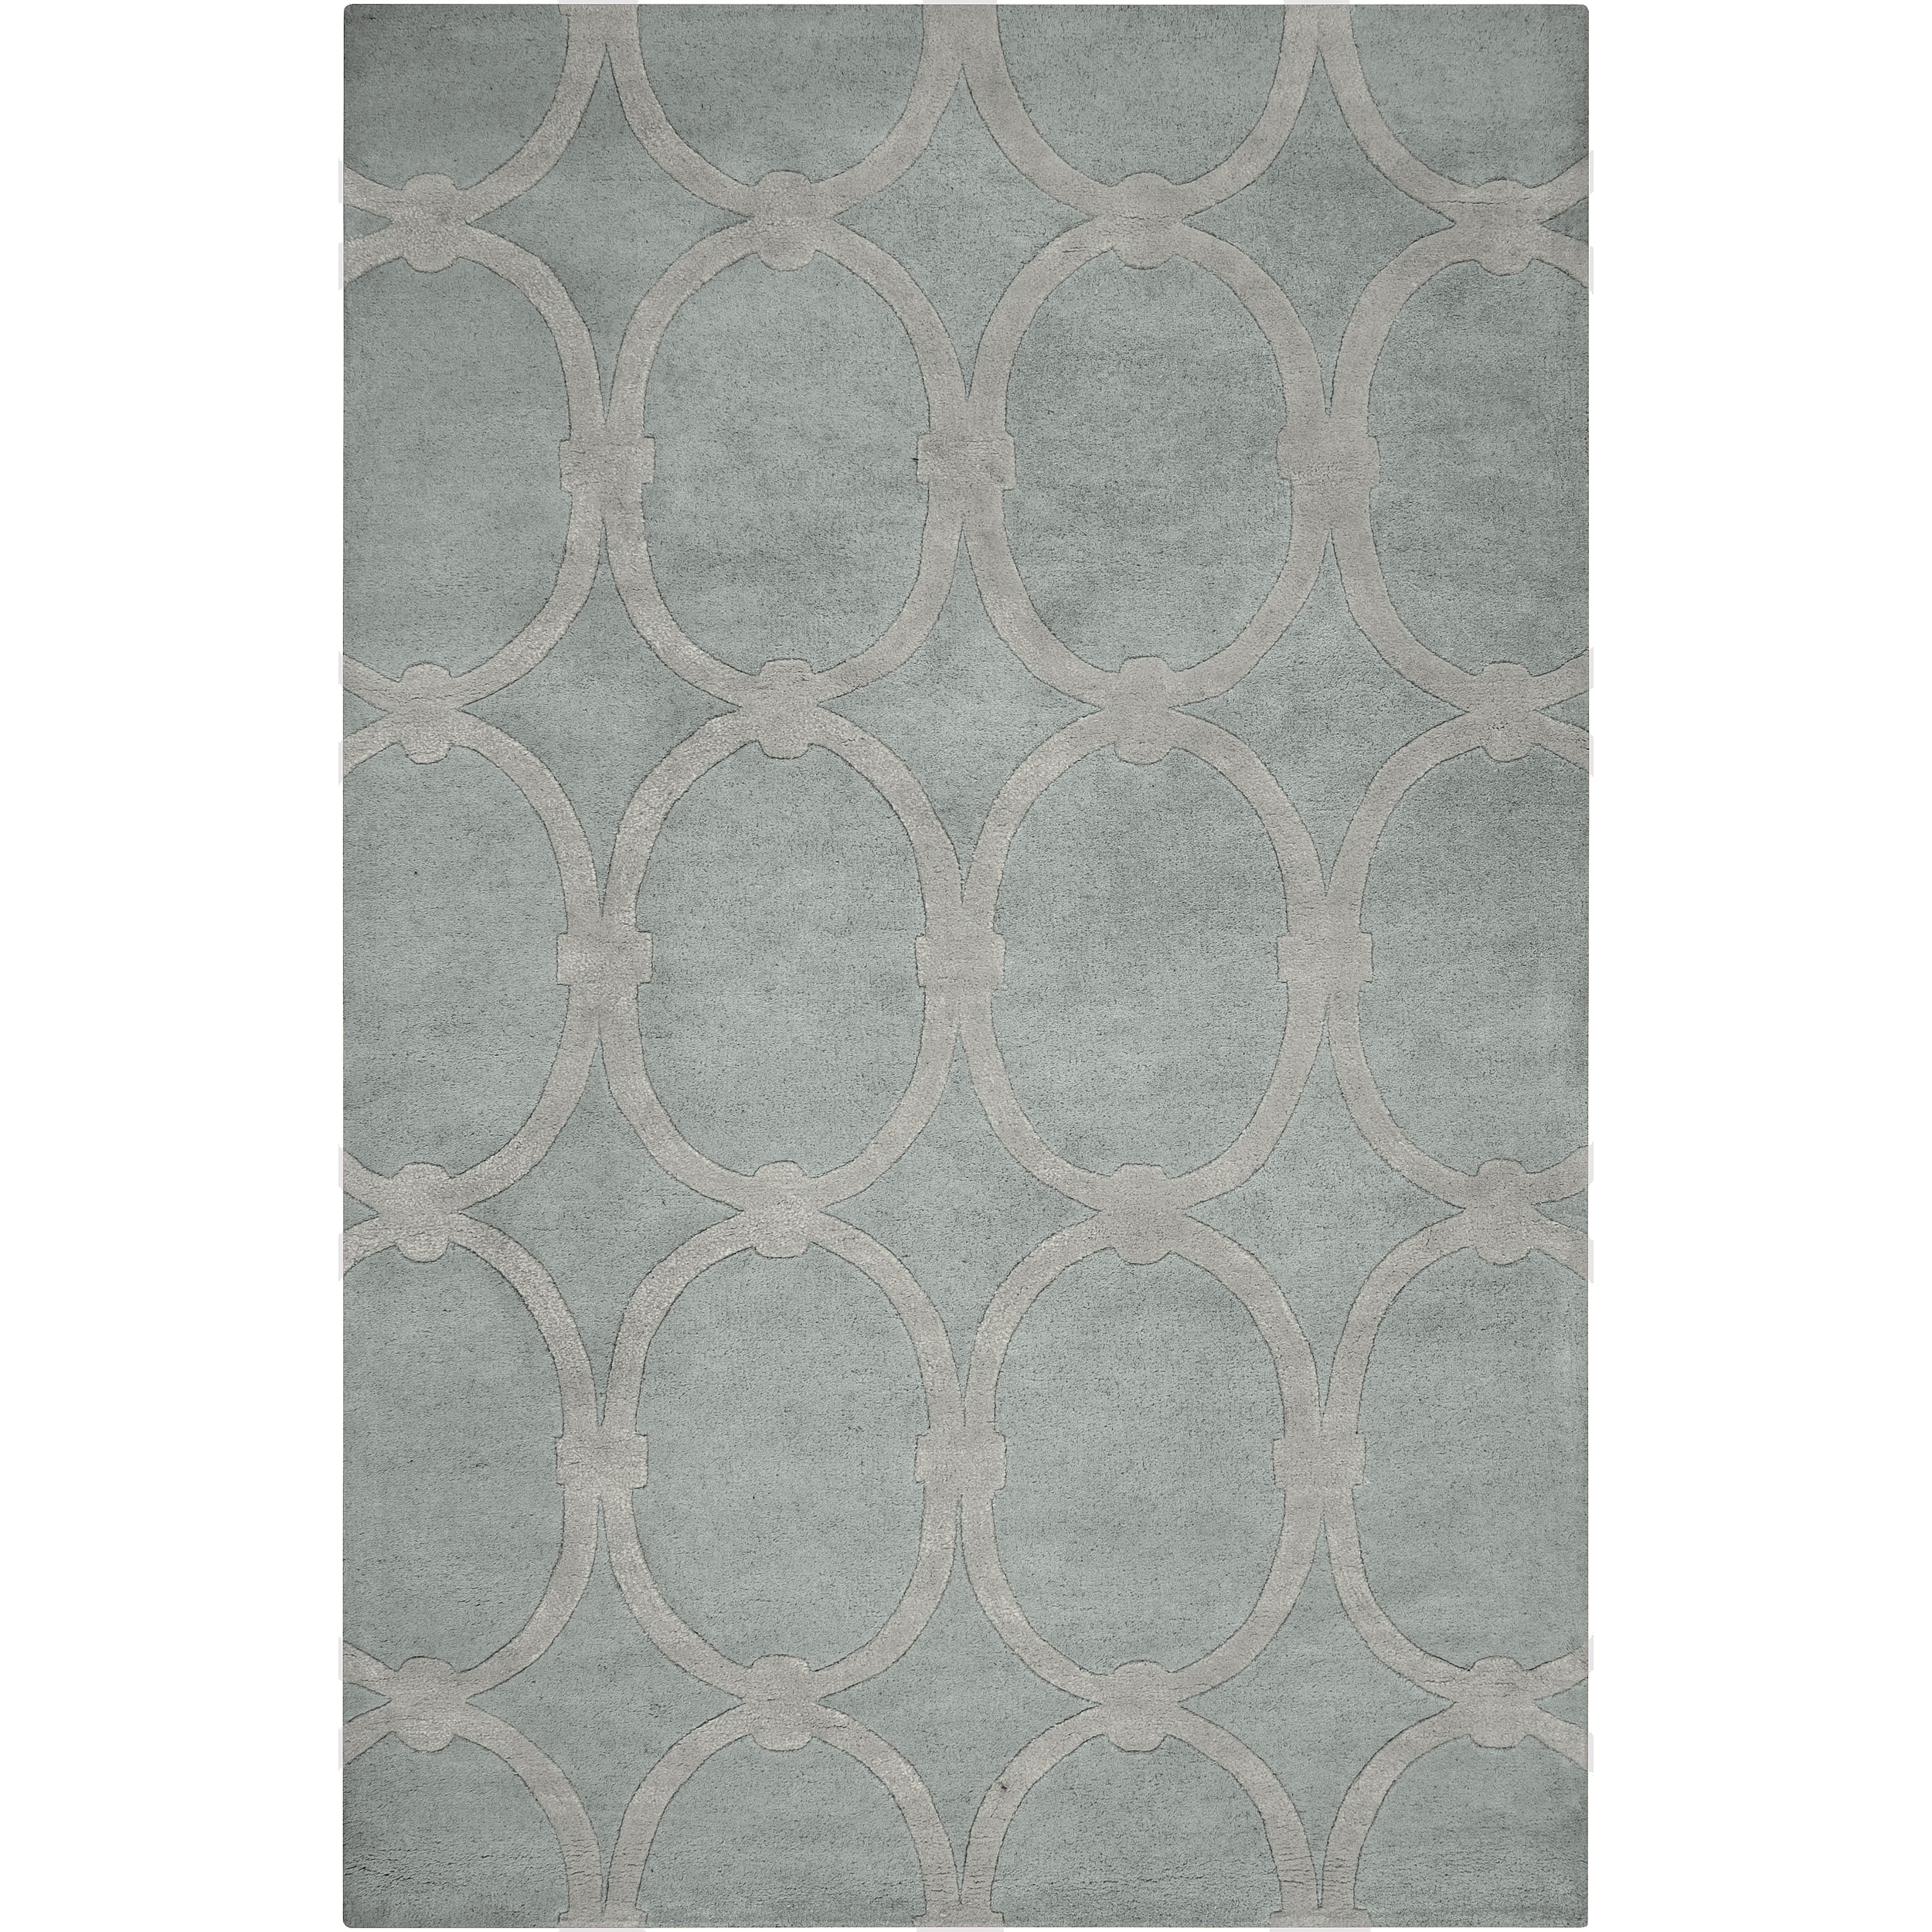 Hand-tufted Blue Colosseum Trellis Pattern Wool Rug (3'3 x 5'3)